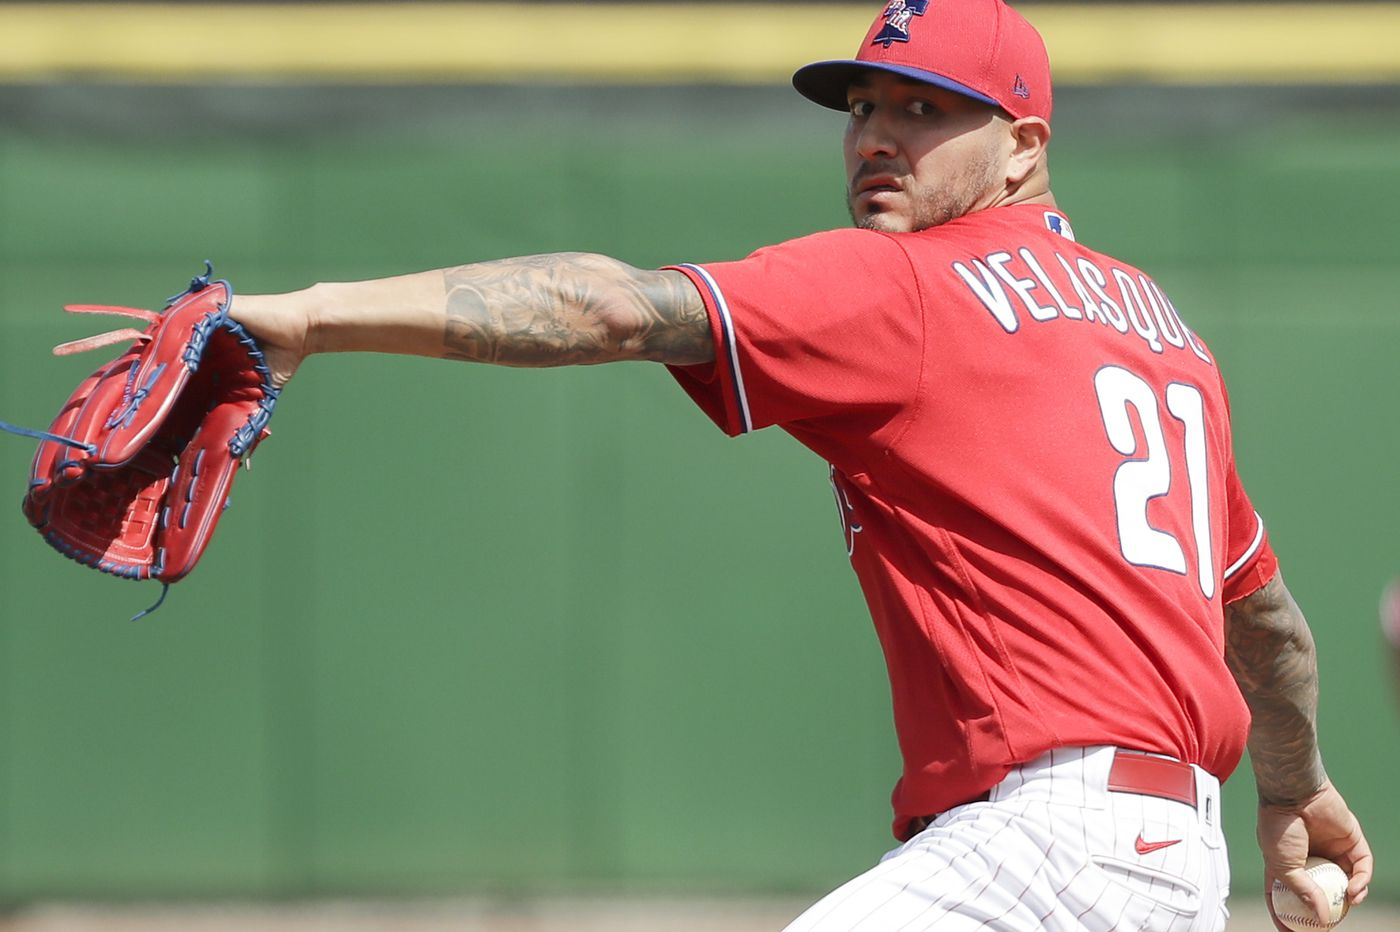 Phillies' Vince Velasquez is keeping it down to be more effective